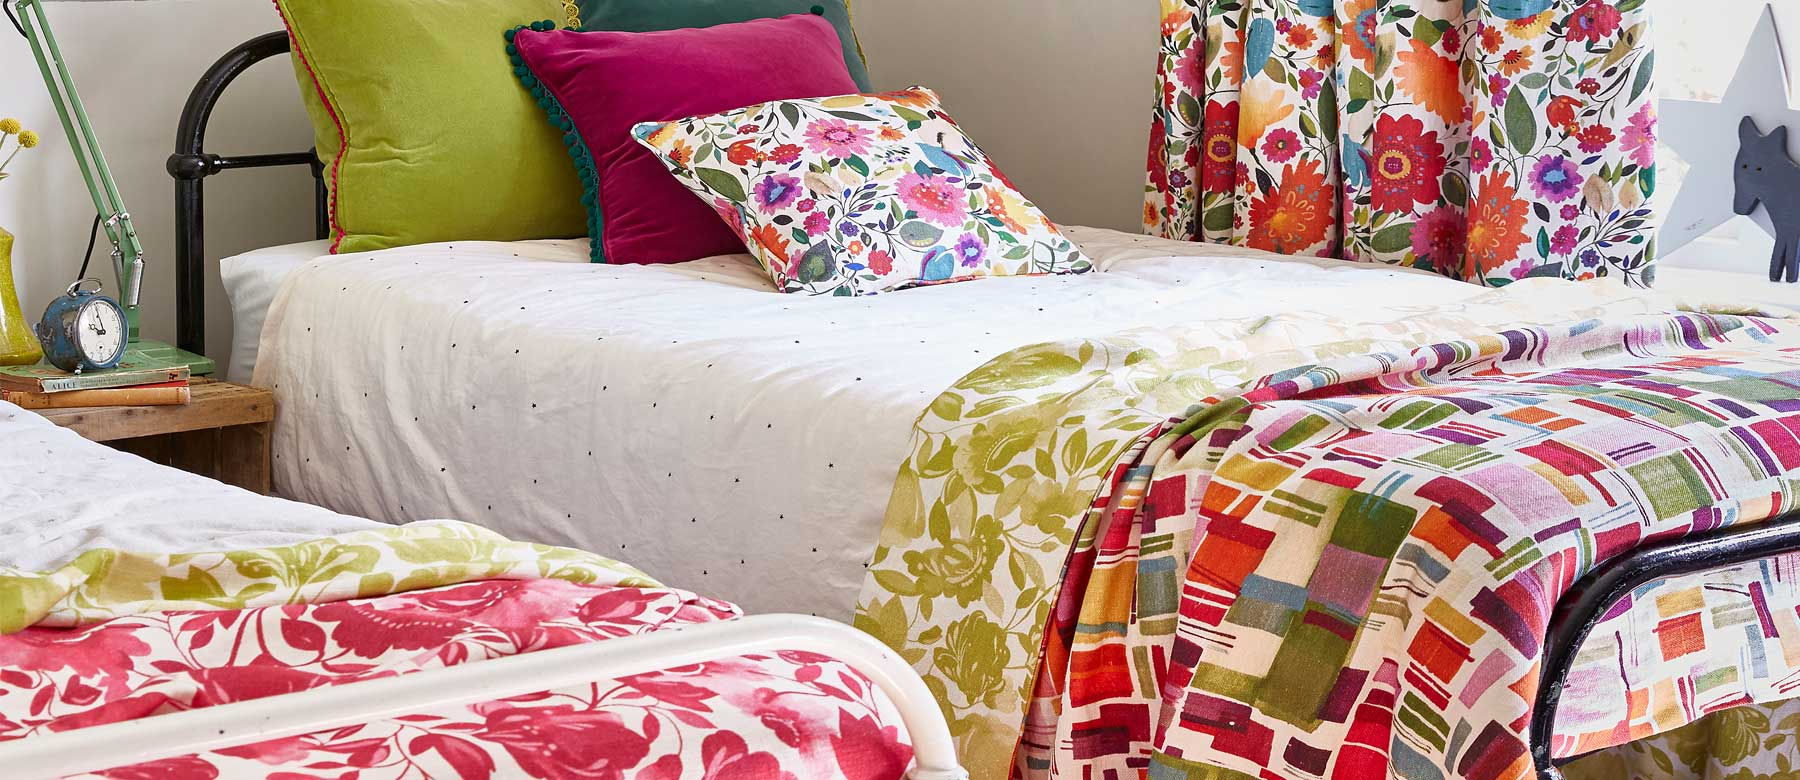 Perfectly Designed Bedding